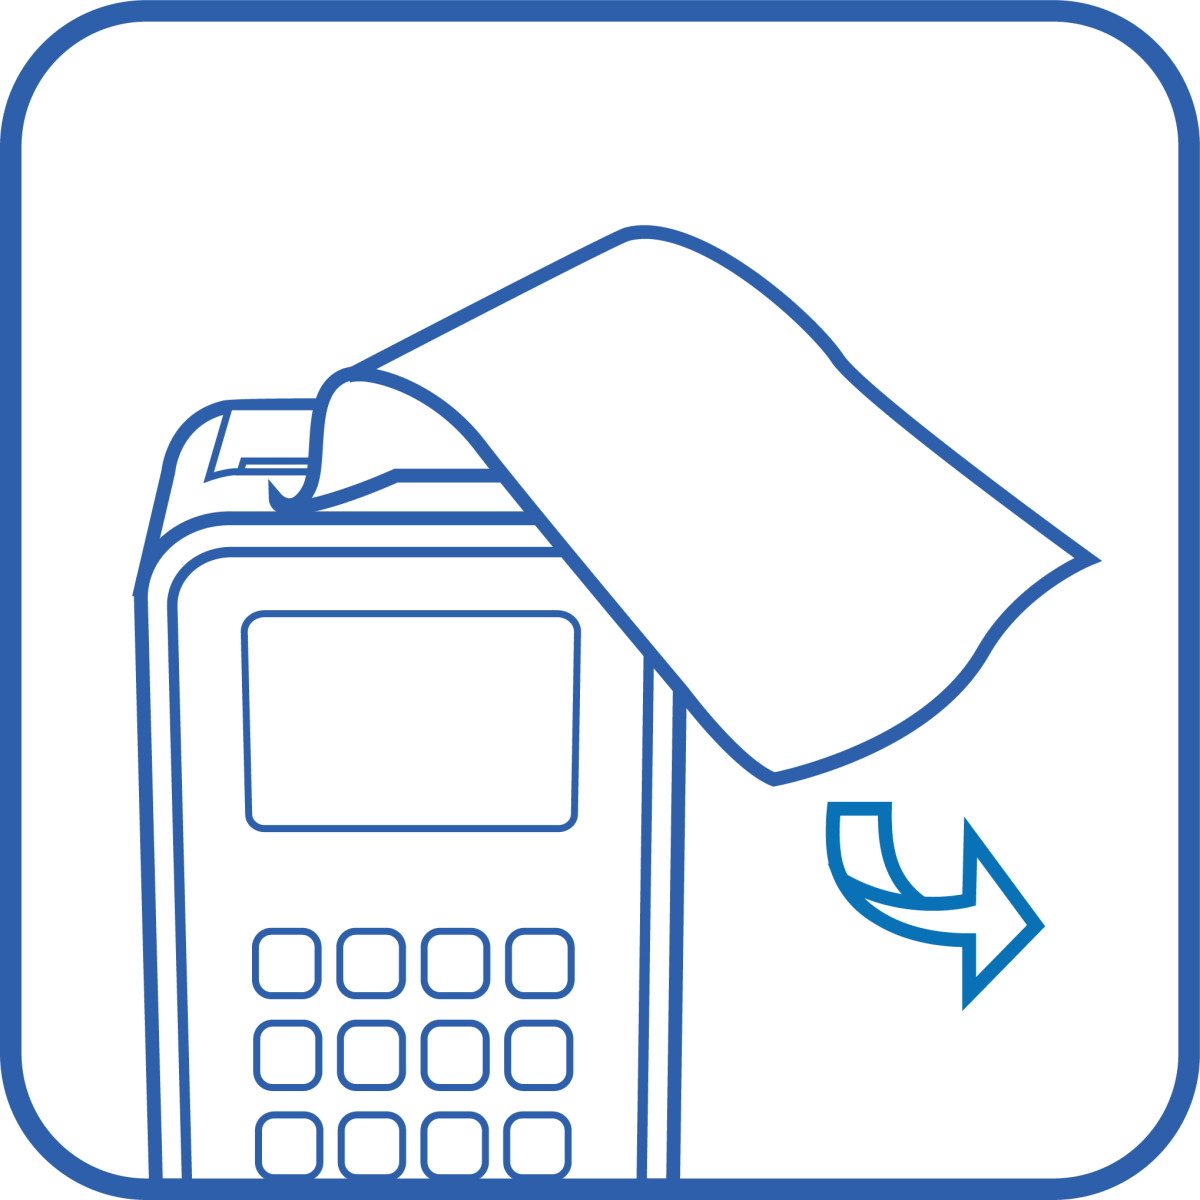 icon of receipt being torn away from 3g printer